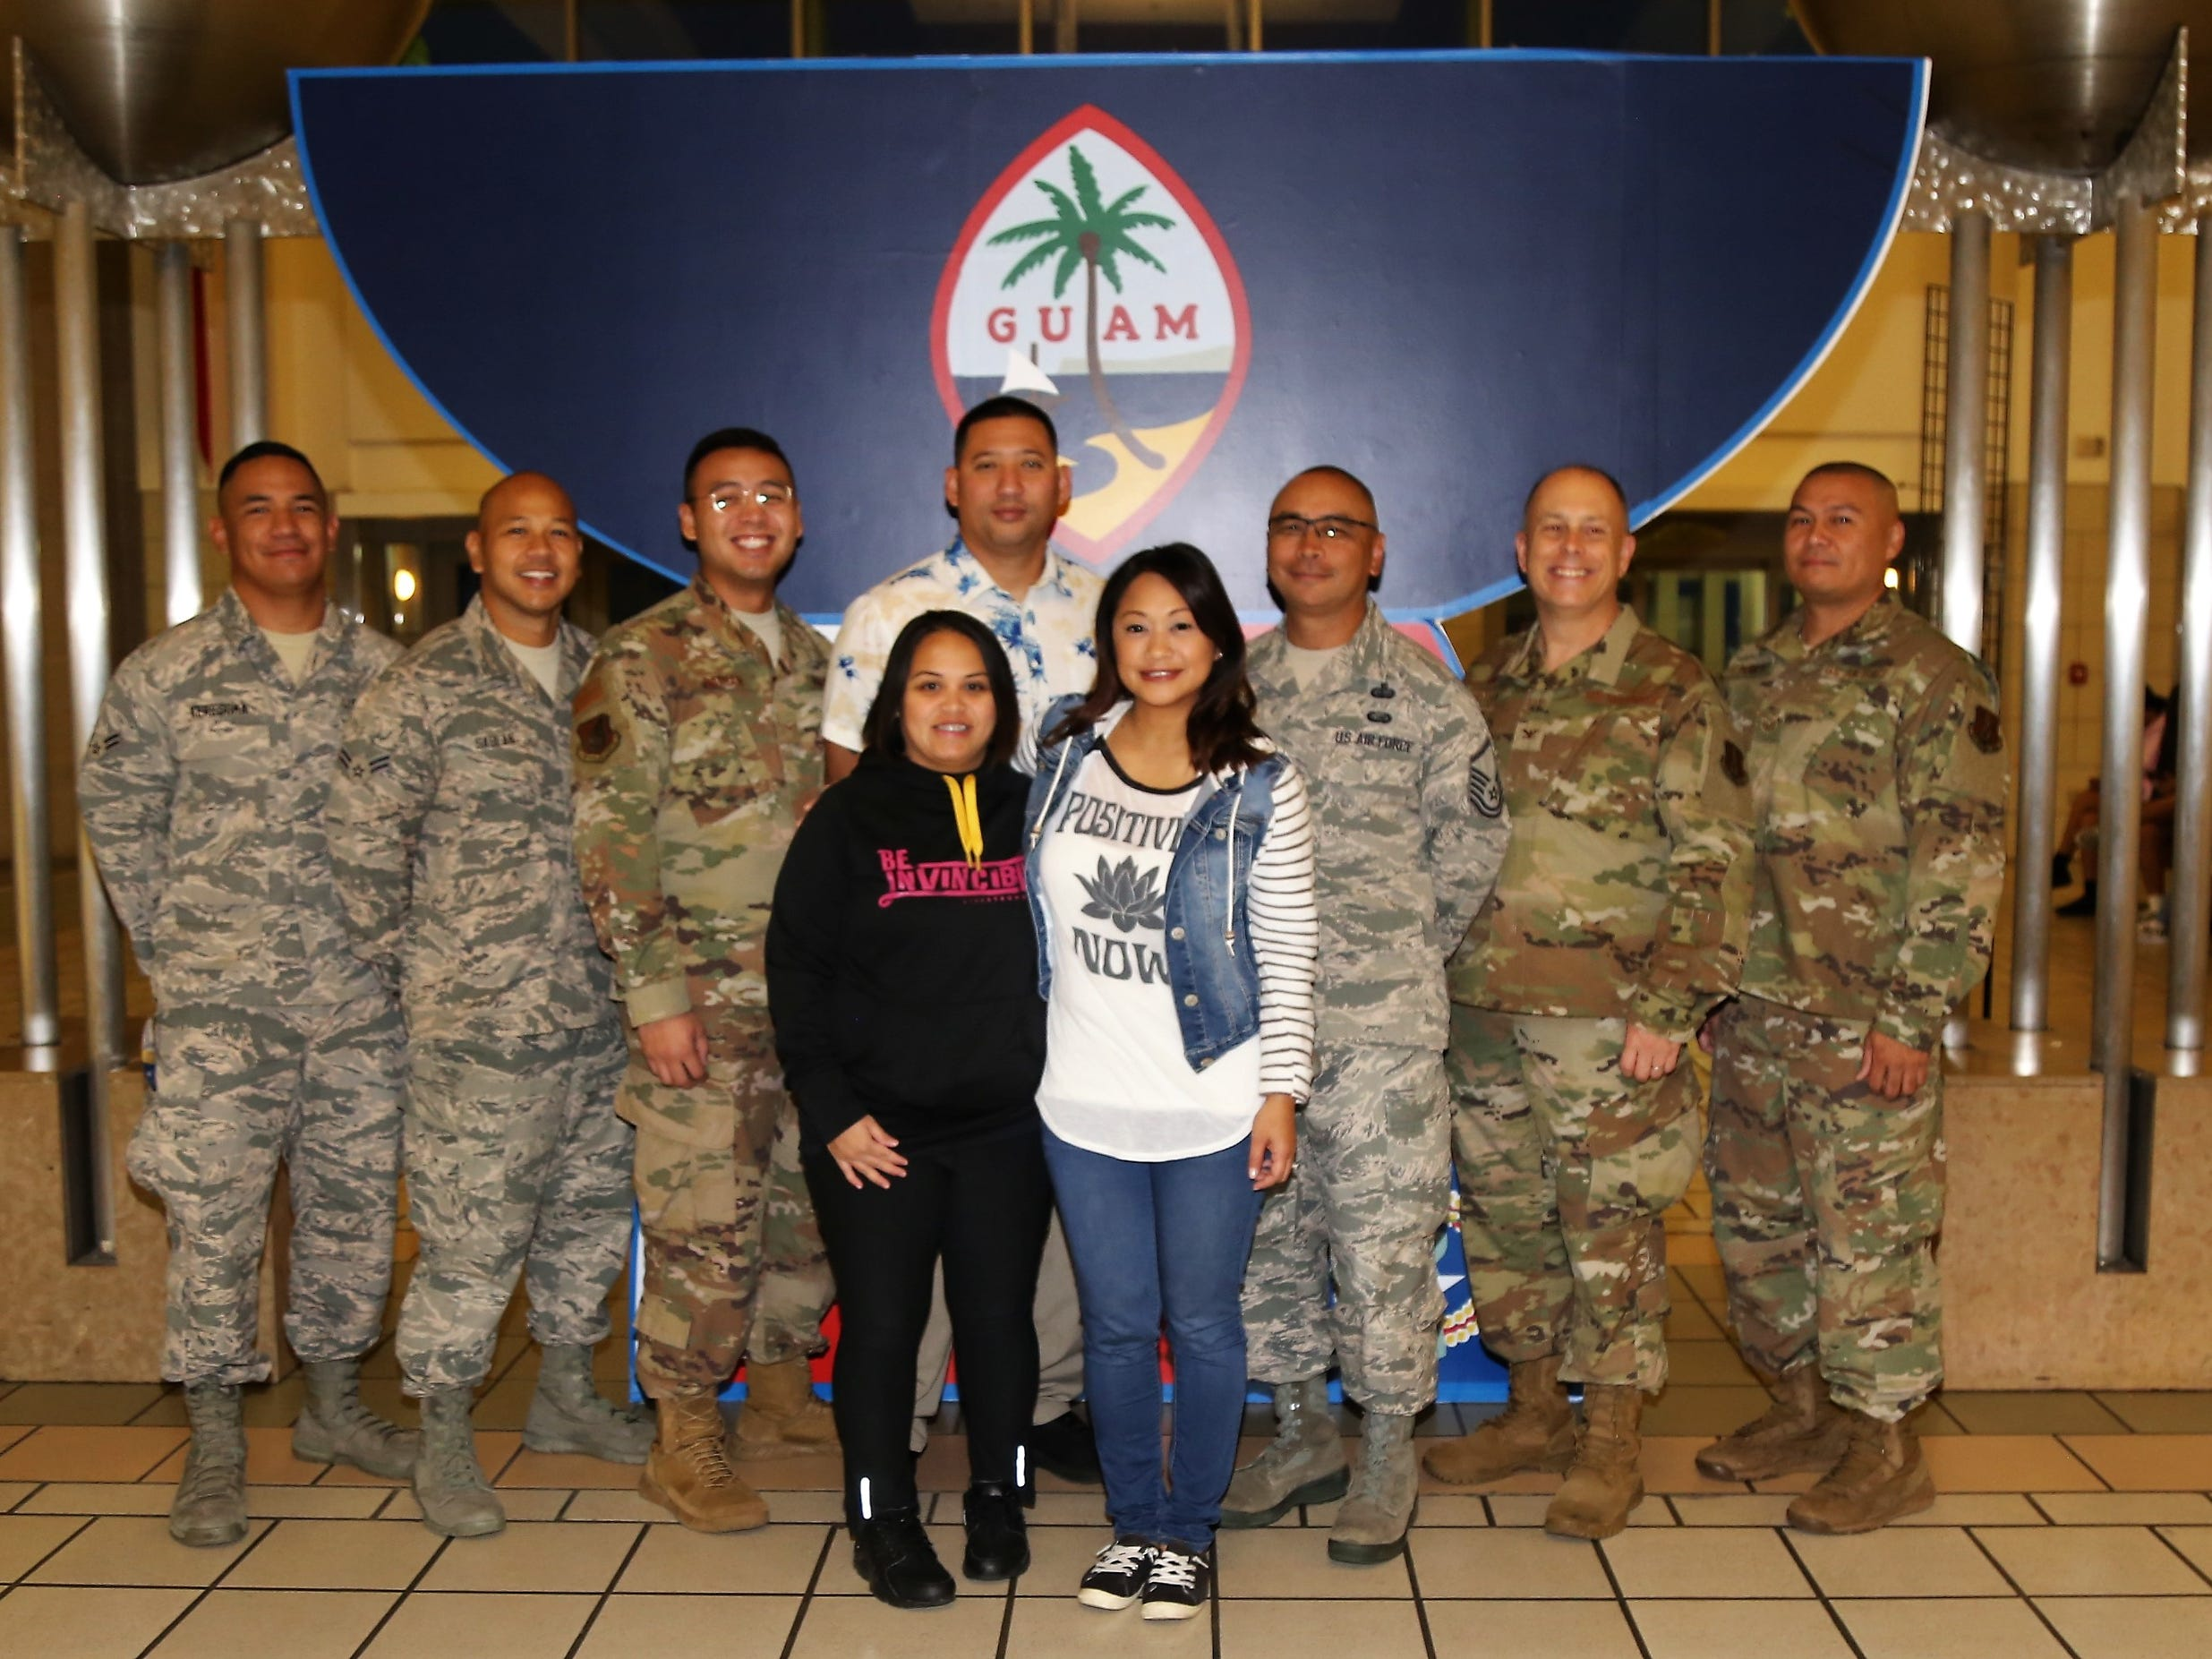 Technical Sgt. Michelle Castro in white prior to departing for a deployment in support of Operation Inherent Resolve in Southwest Asia.